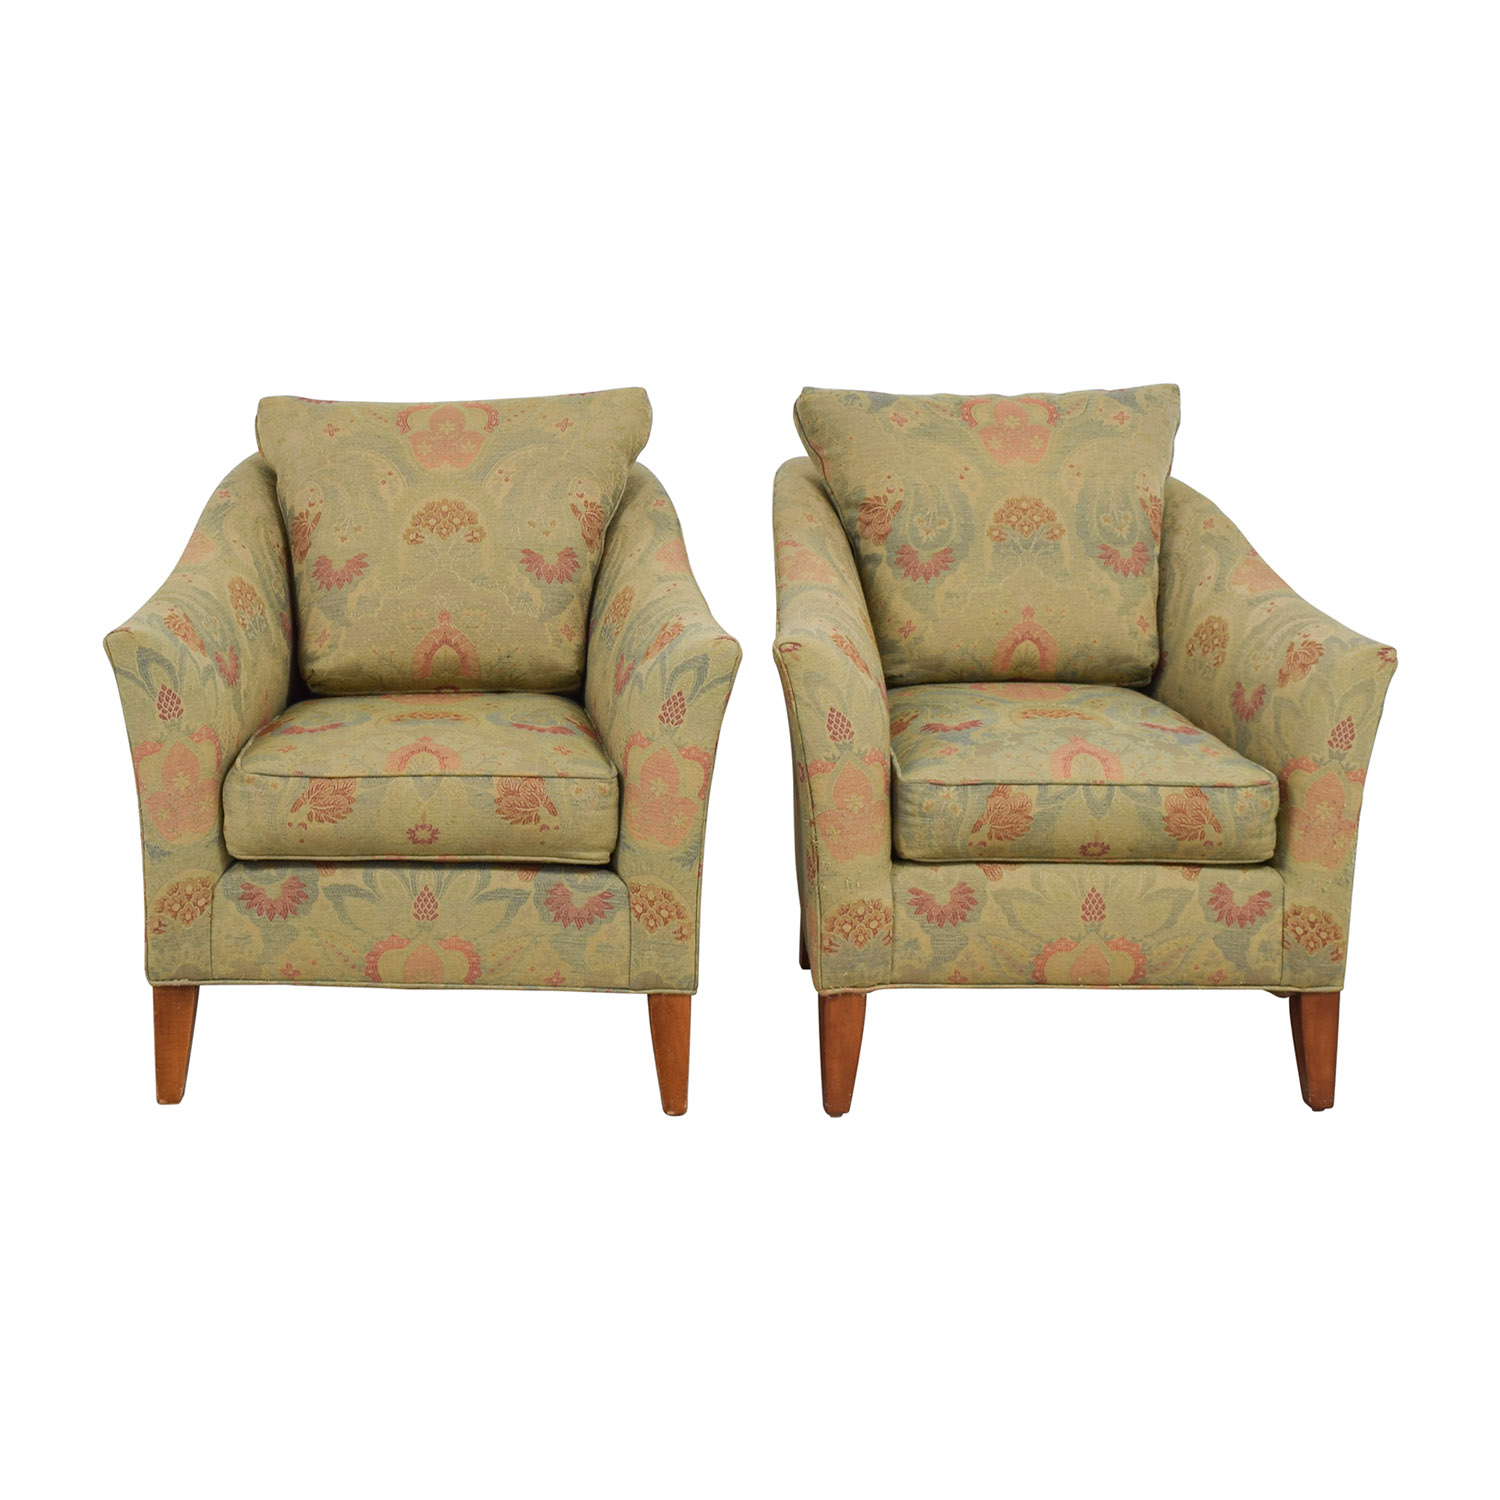 Ethan Allen Ethan Allen Gibson Floral Chairs dimensions